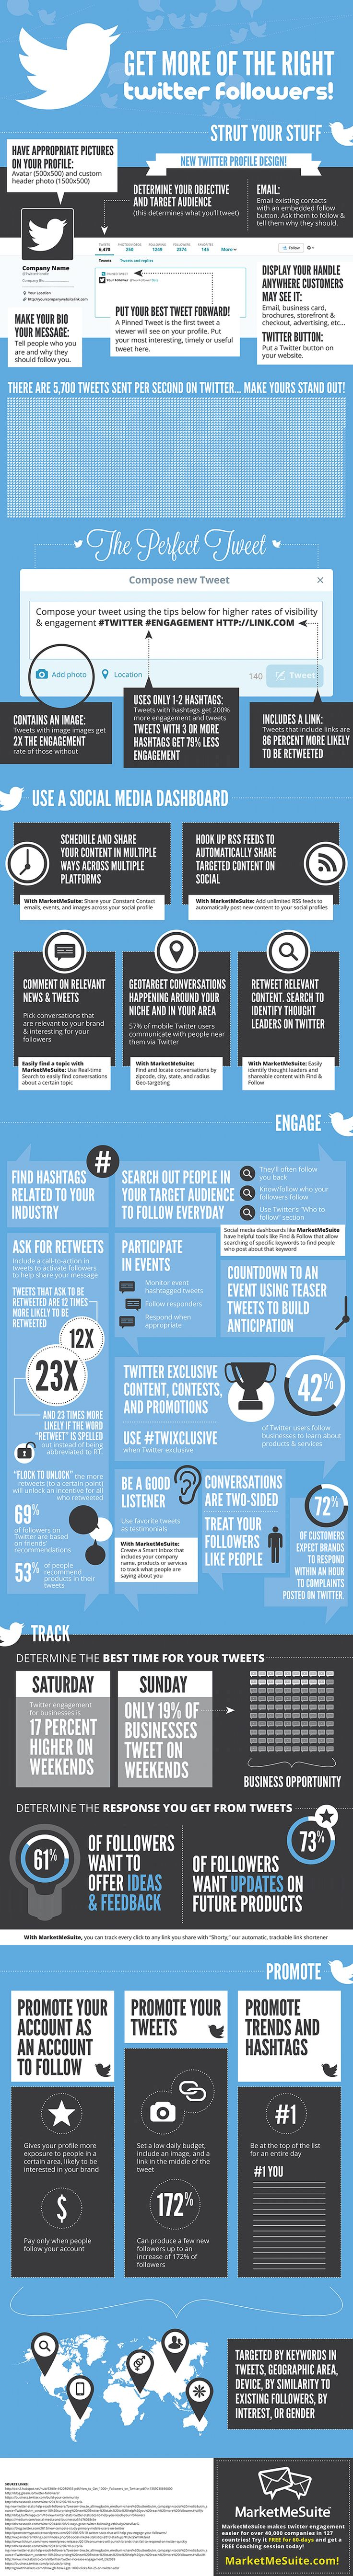 Get More of the Right #Twitter Followers #infographic